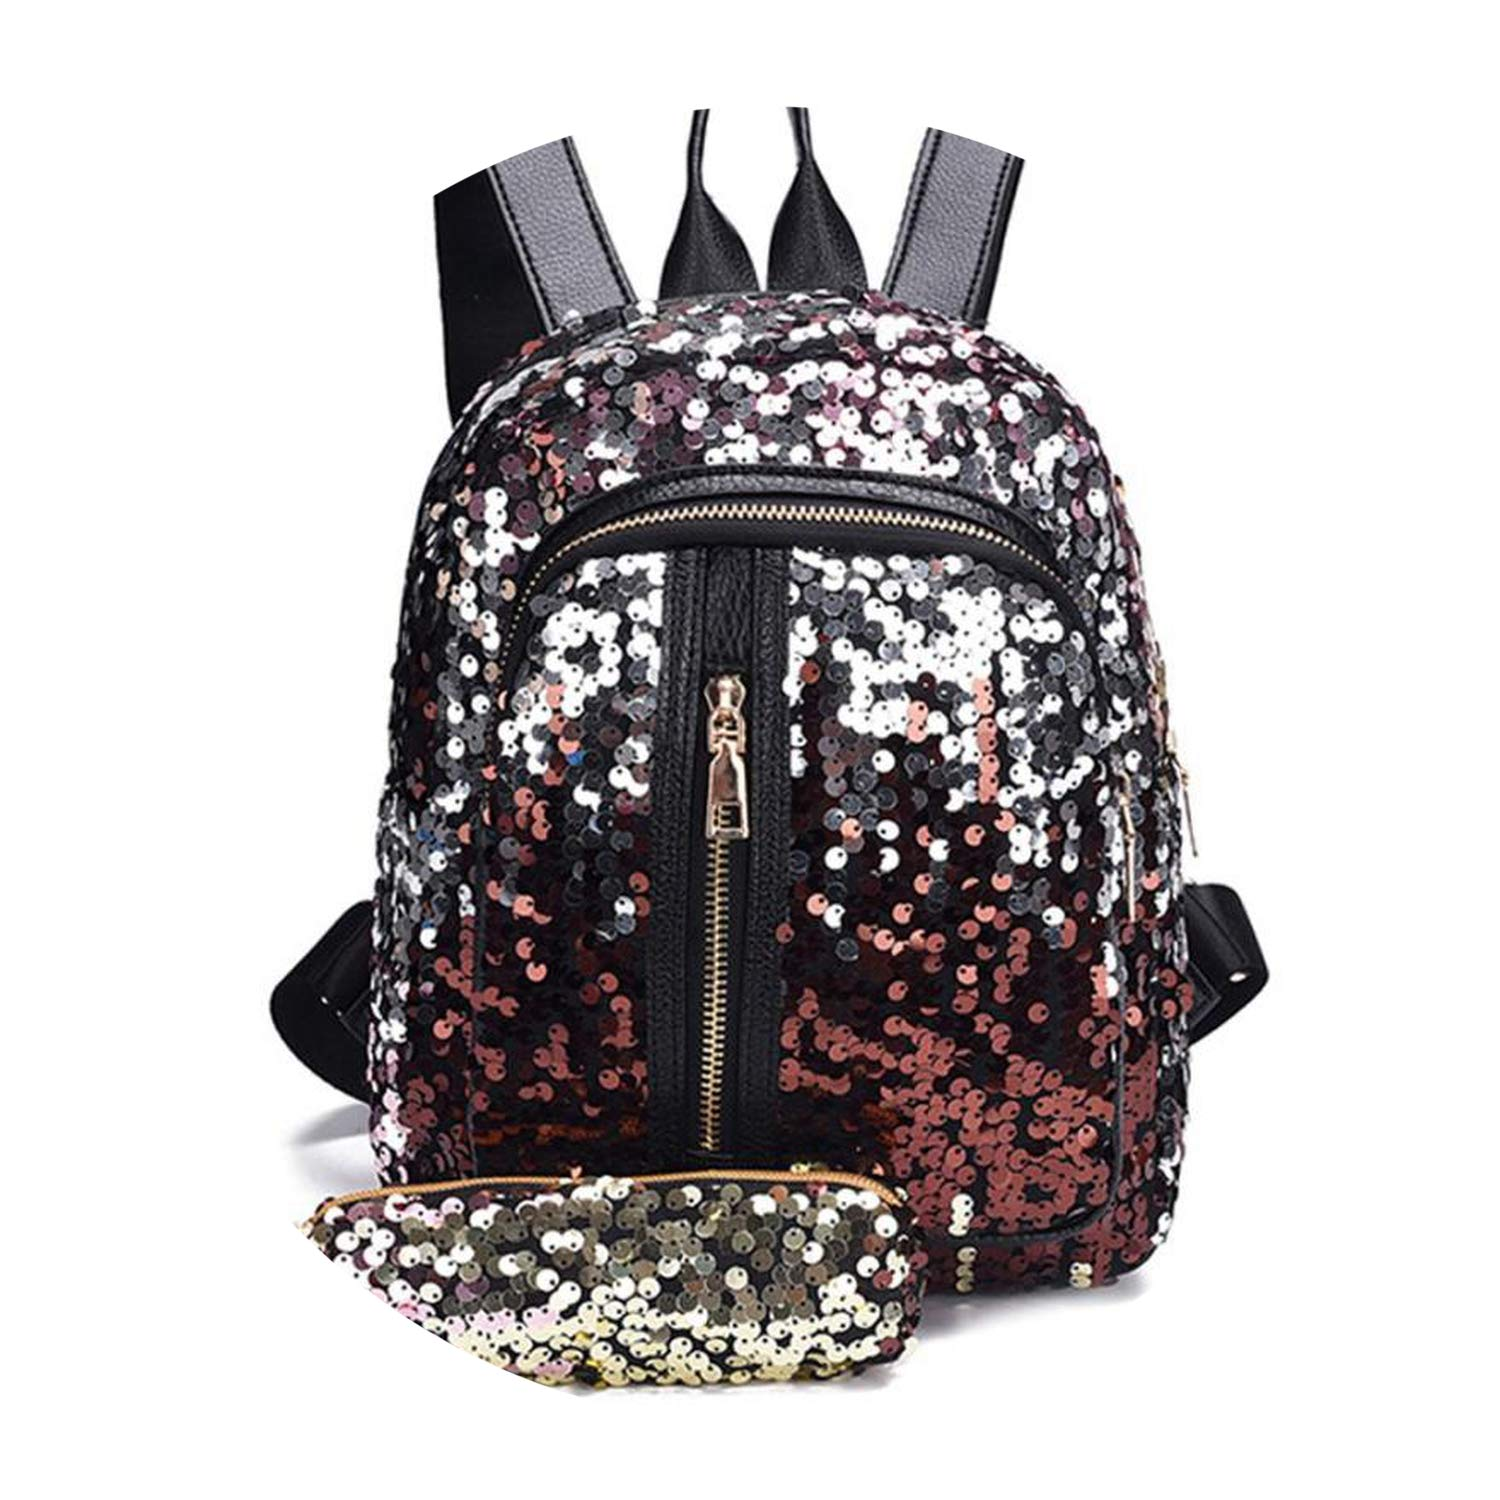 ca88e44634 Fashion Girl Sequins School Bag Backpack Travel Shoulder Bag+Clutch drop  shipping A0611 30